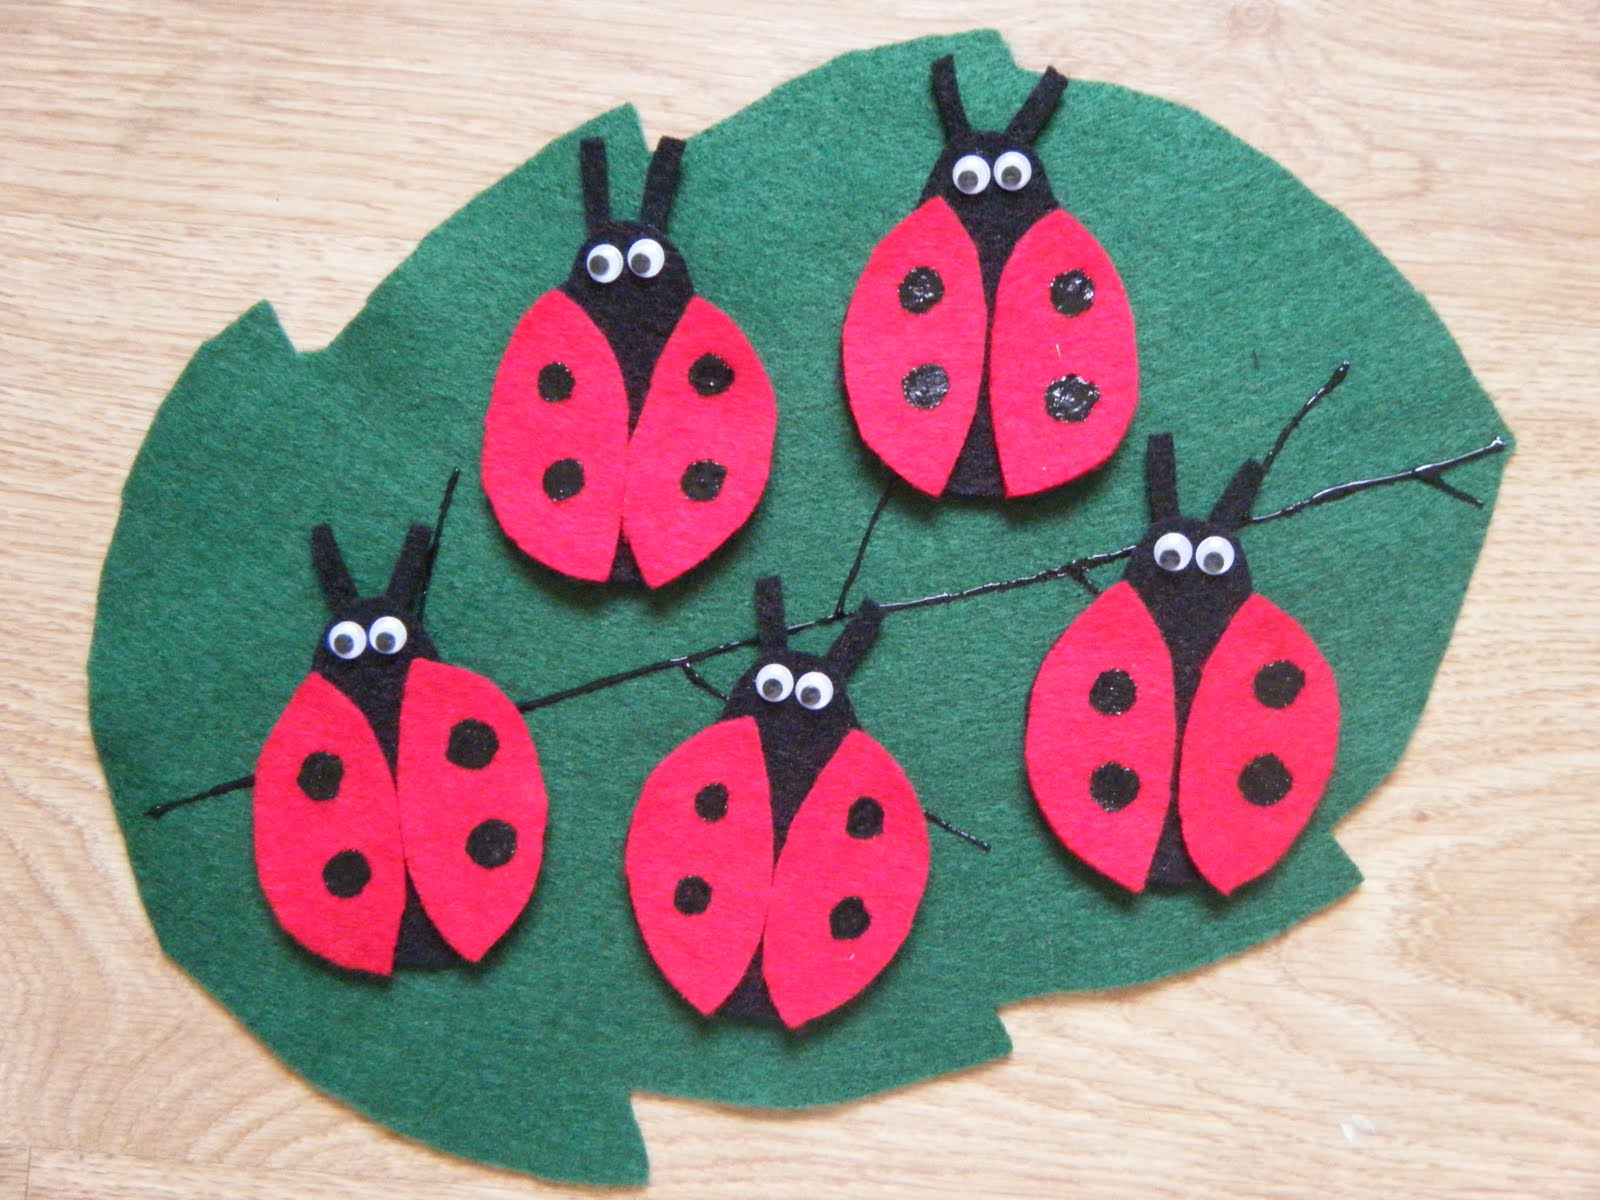 http://feltboardideas.blogspot.ca/2014/04/ladybug-ladybug-fly-away-home-ideas-for.html